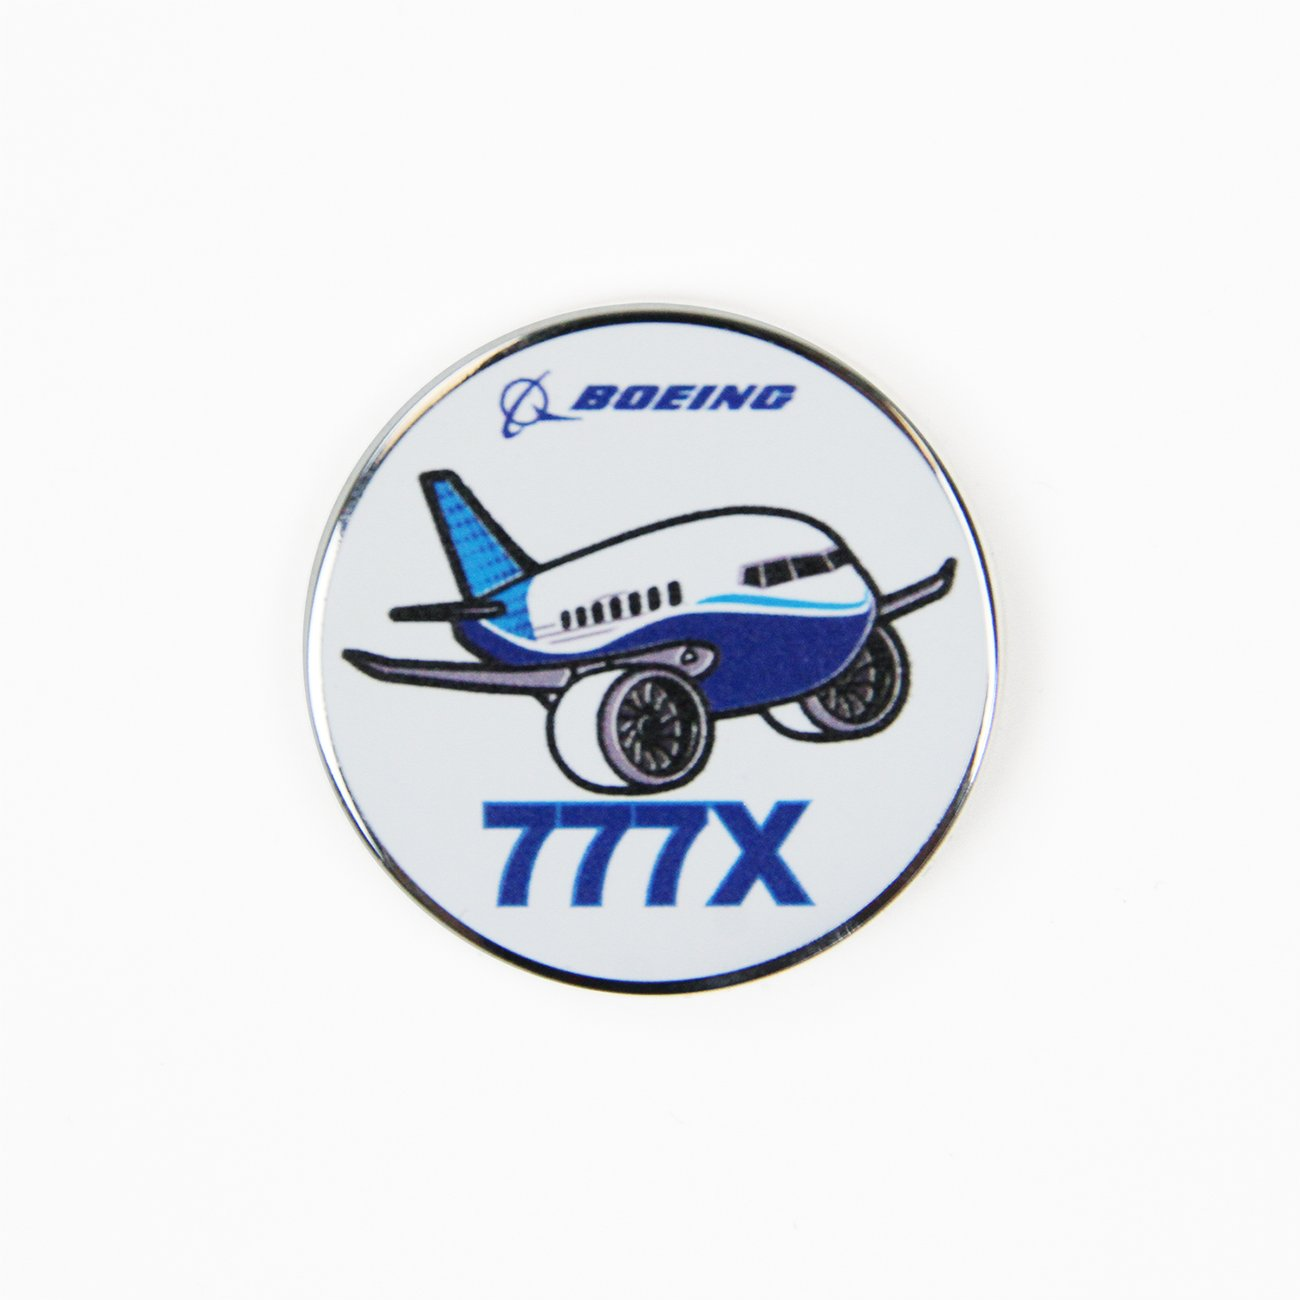 Boeing Pudgy Pin